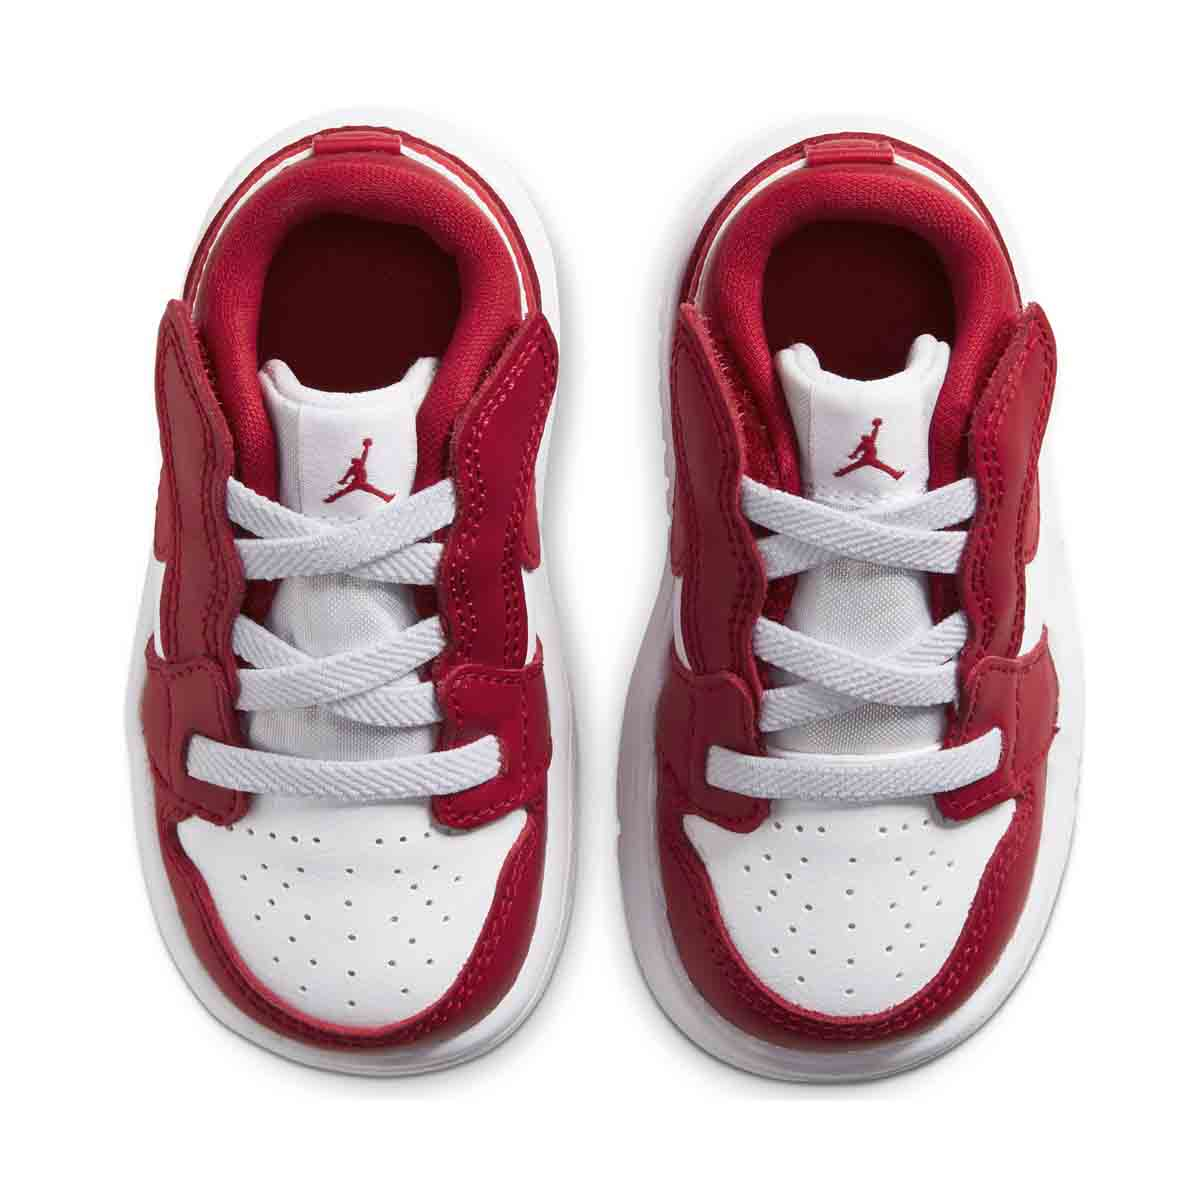 Toddler Jordan 1 Low Alt